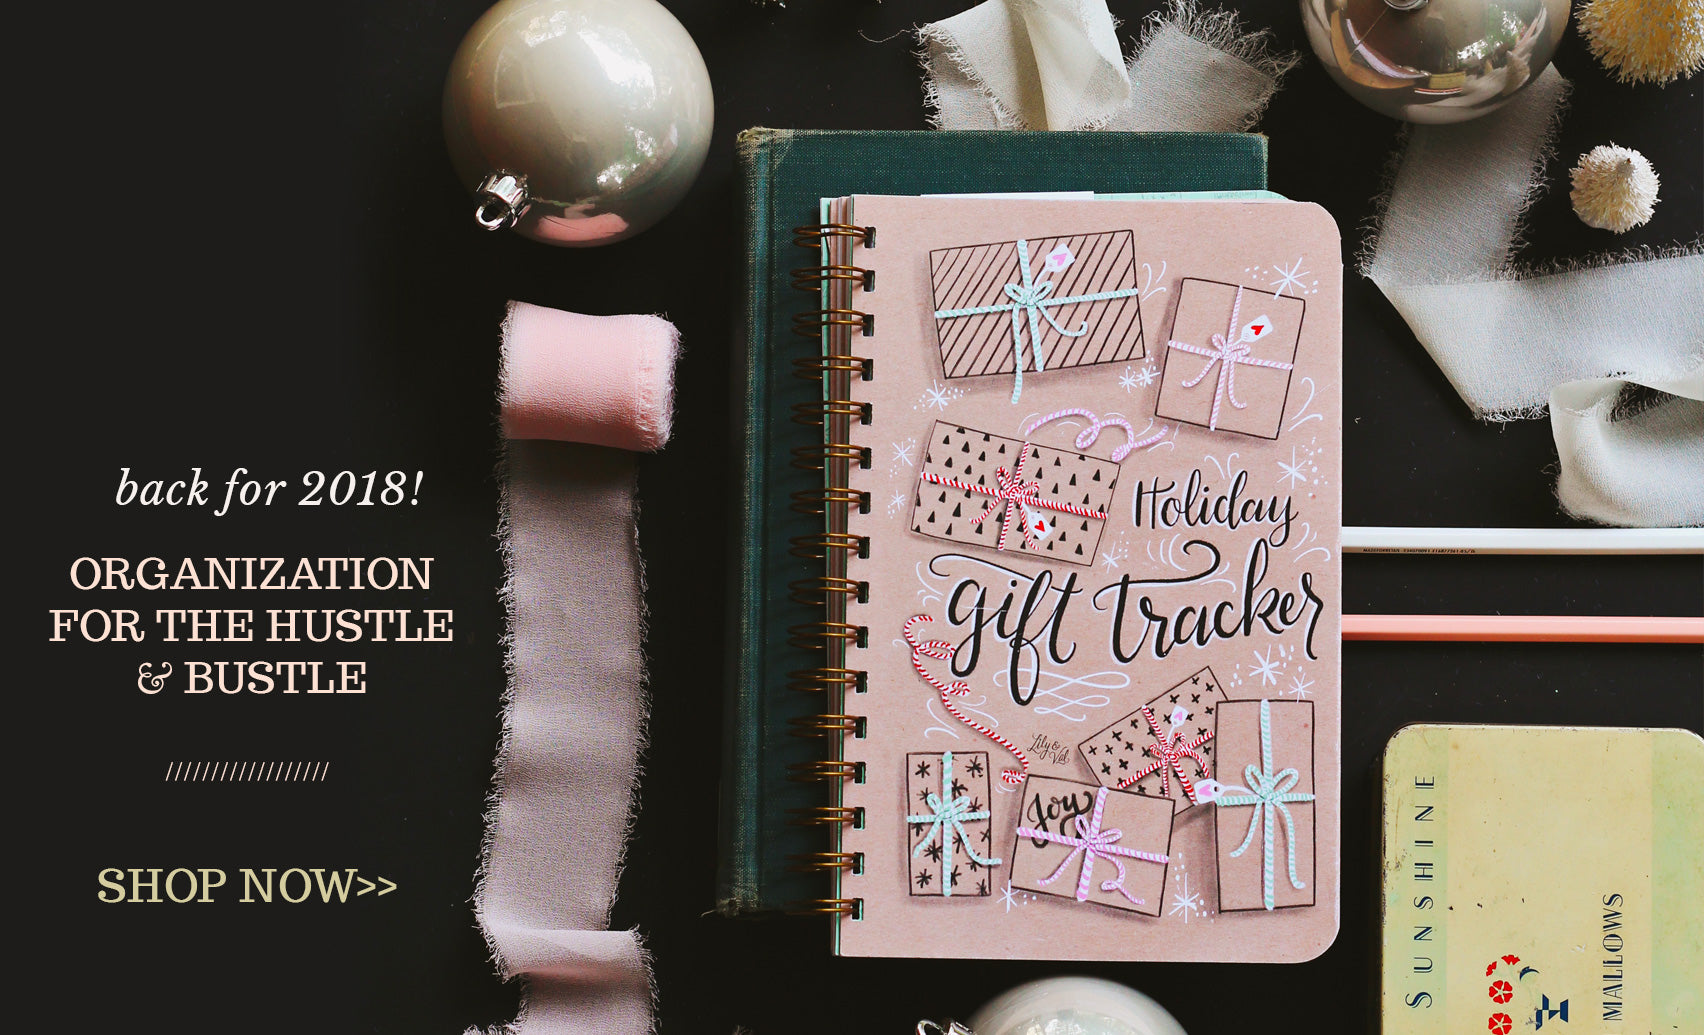 Organization for the Hustle & Bustle: The Holiday Gift Tracker!